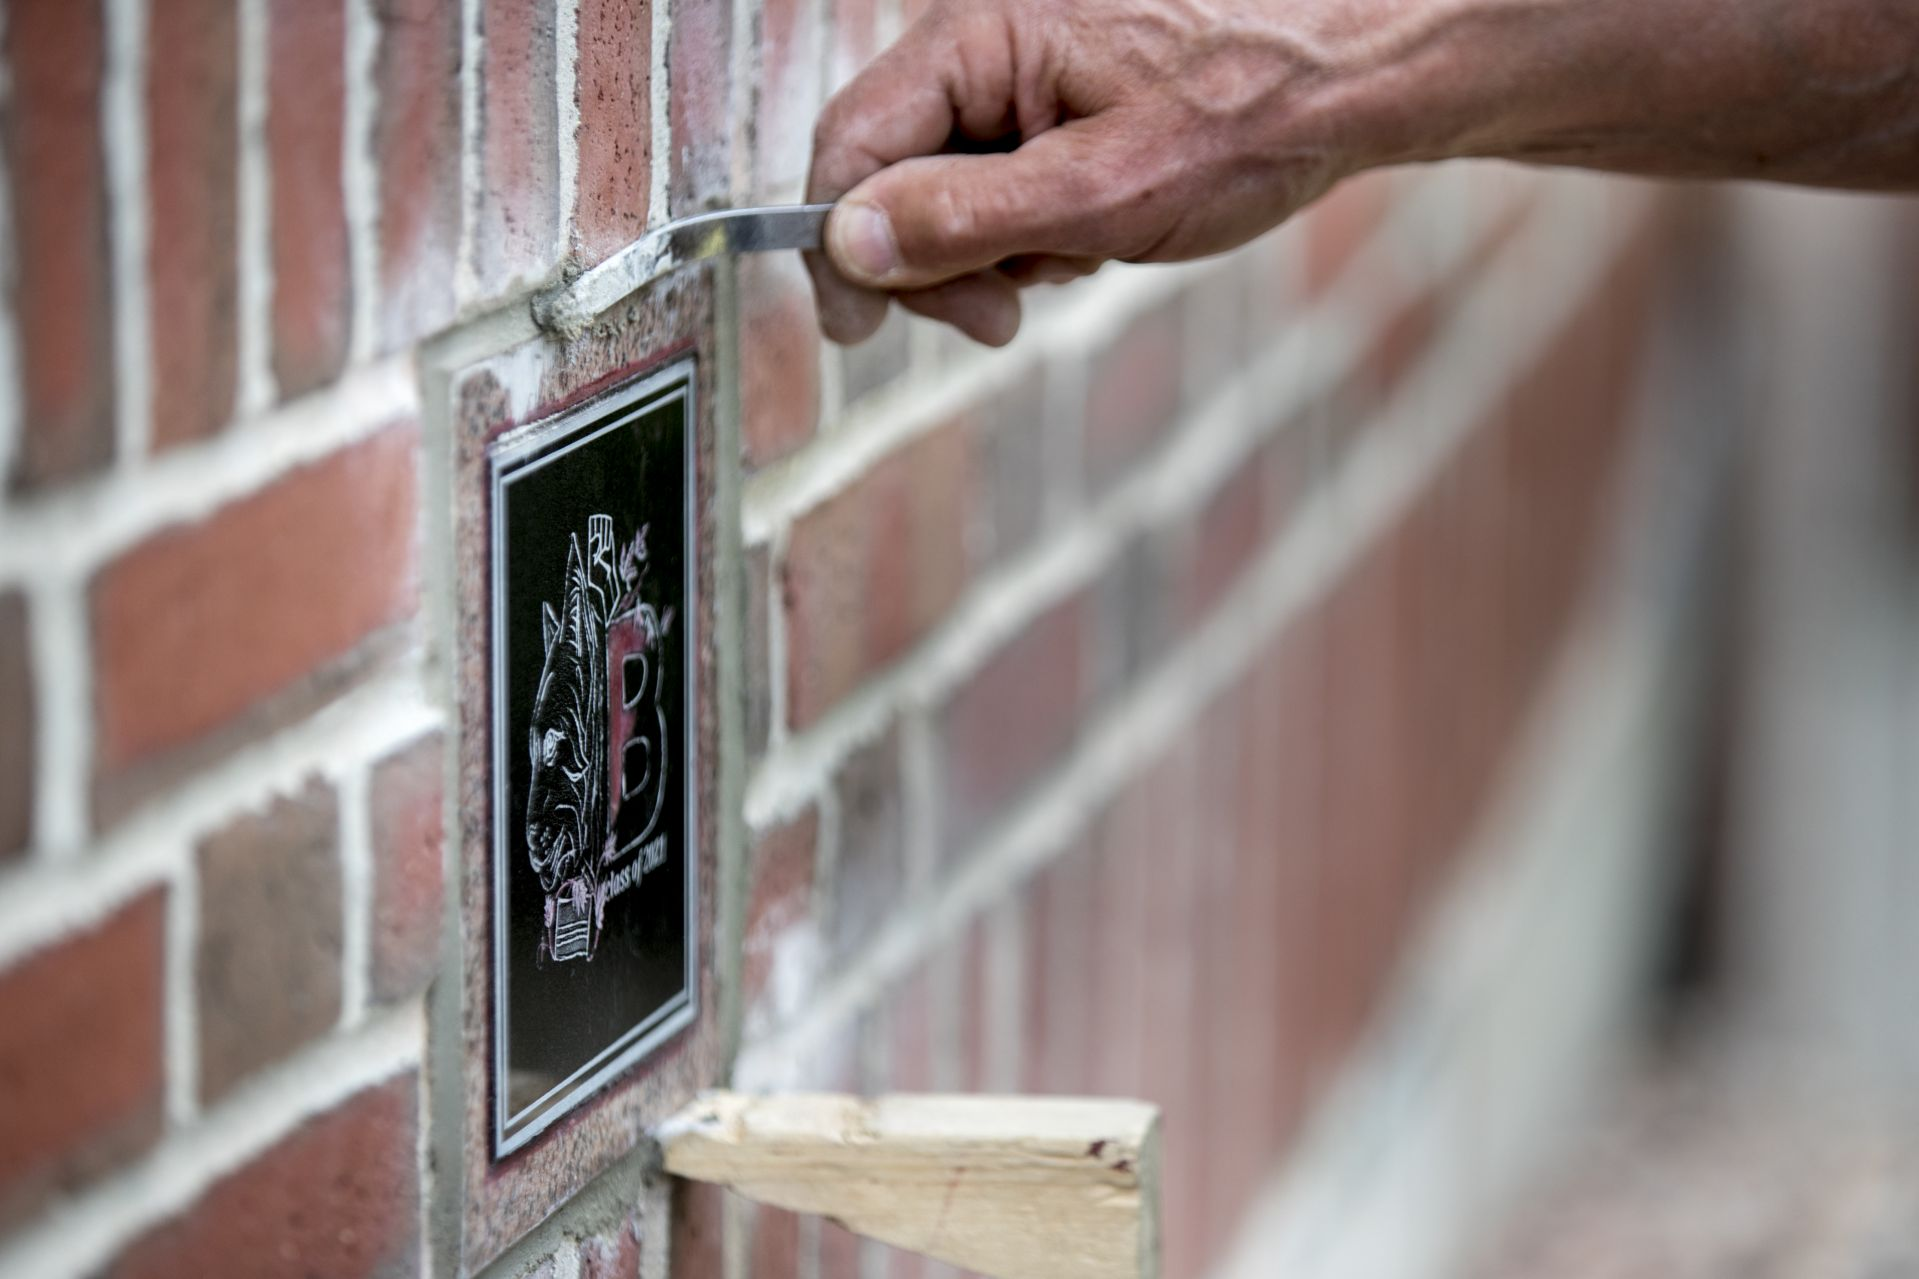 Muskan VermaÊ'21 of Shimla, India, designed the Class of 2021 Ivy Stone that Bates mason Ron Tardif installed to the right of the front door entrance to Pettengill Hall.